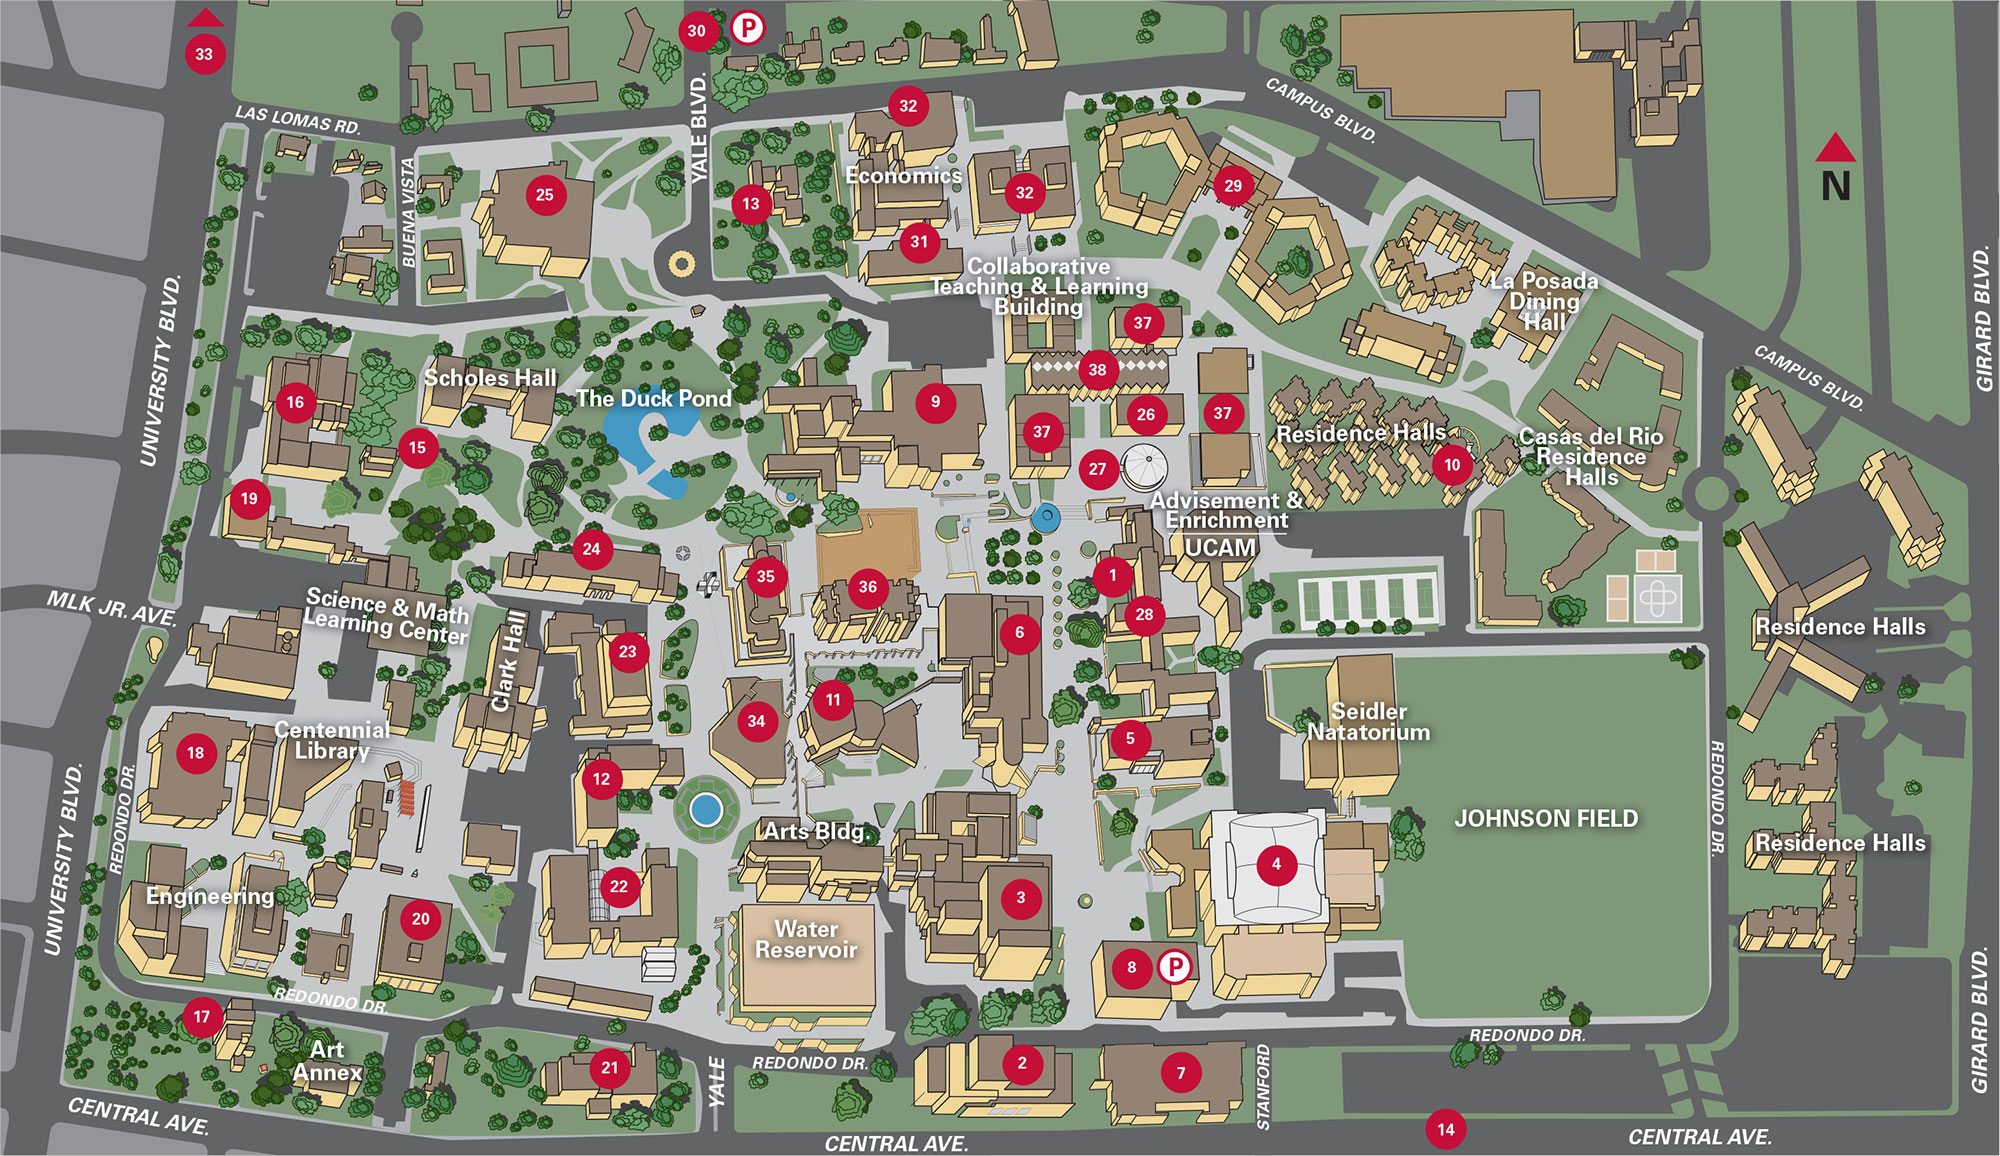 Campus Map | UNM Online Visitor's Guide